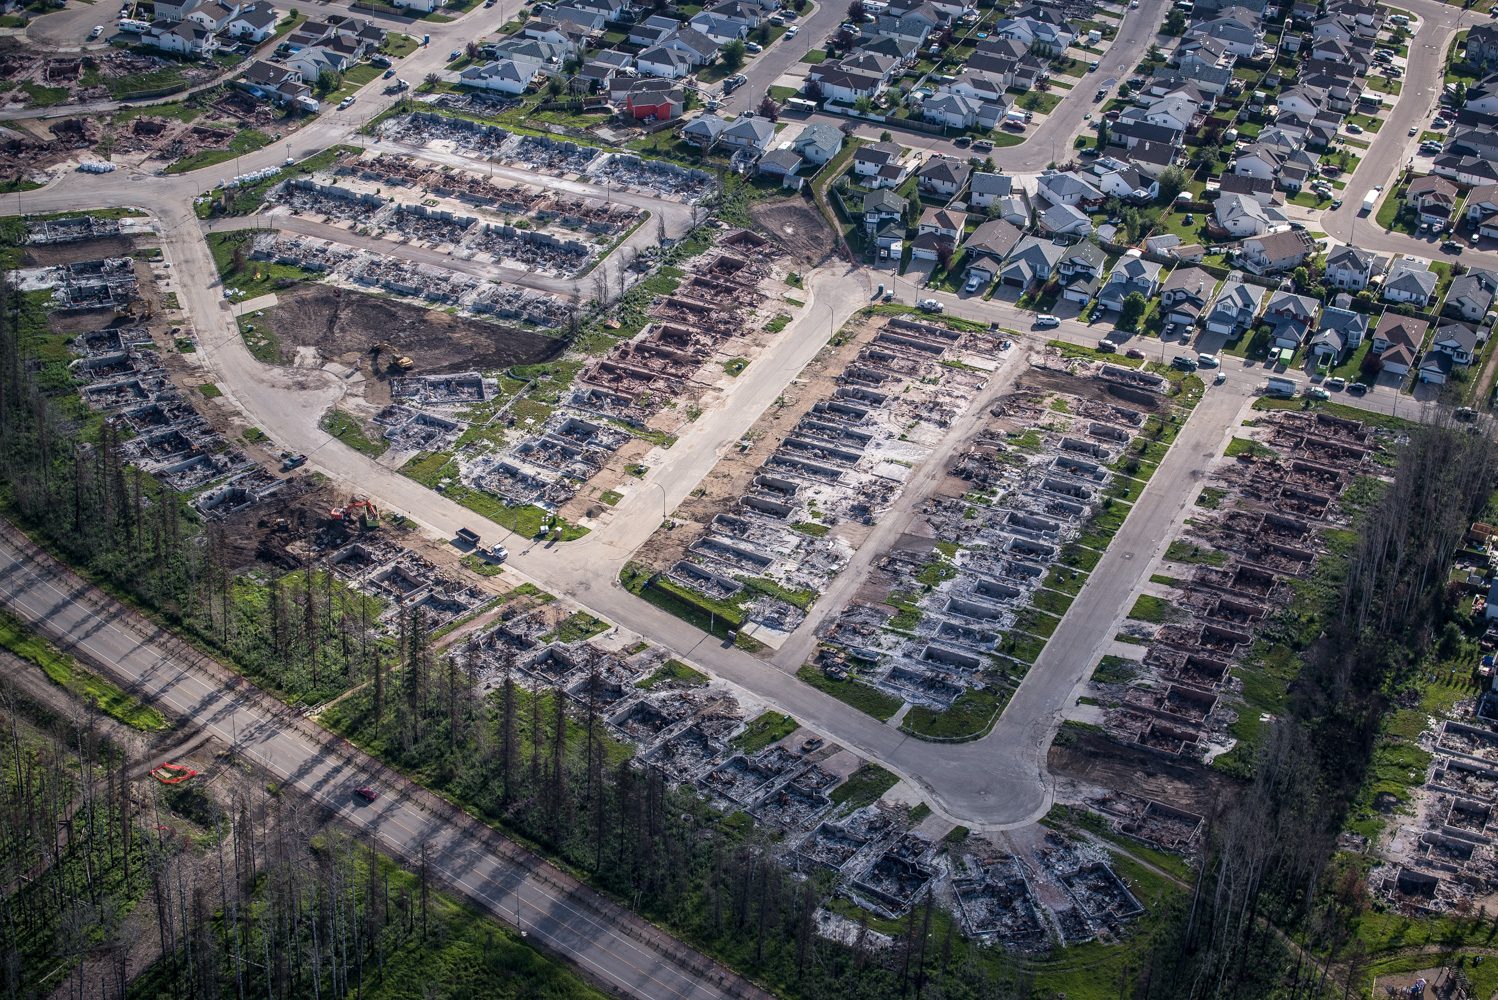 Houses in Wood Buffalo Estates burnt down in the Fort McMurray Wildfires, July 2016.